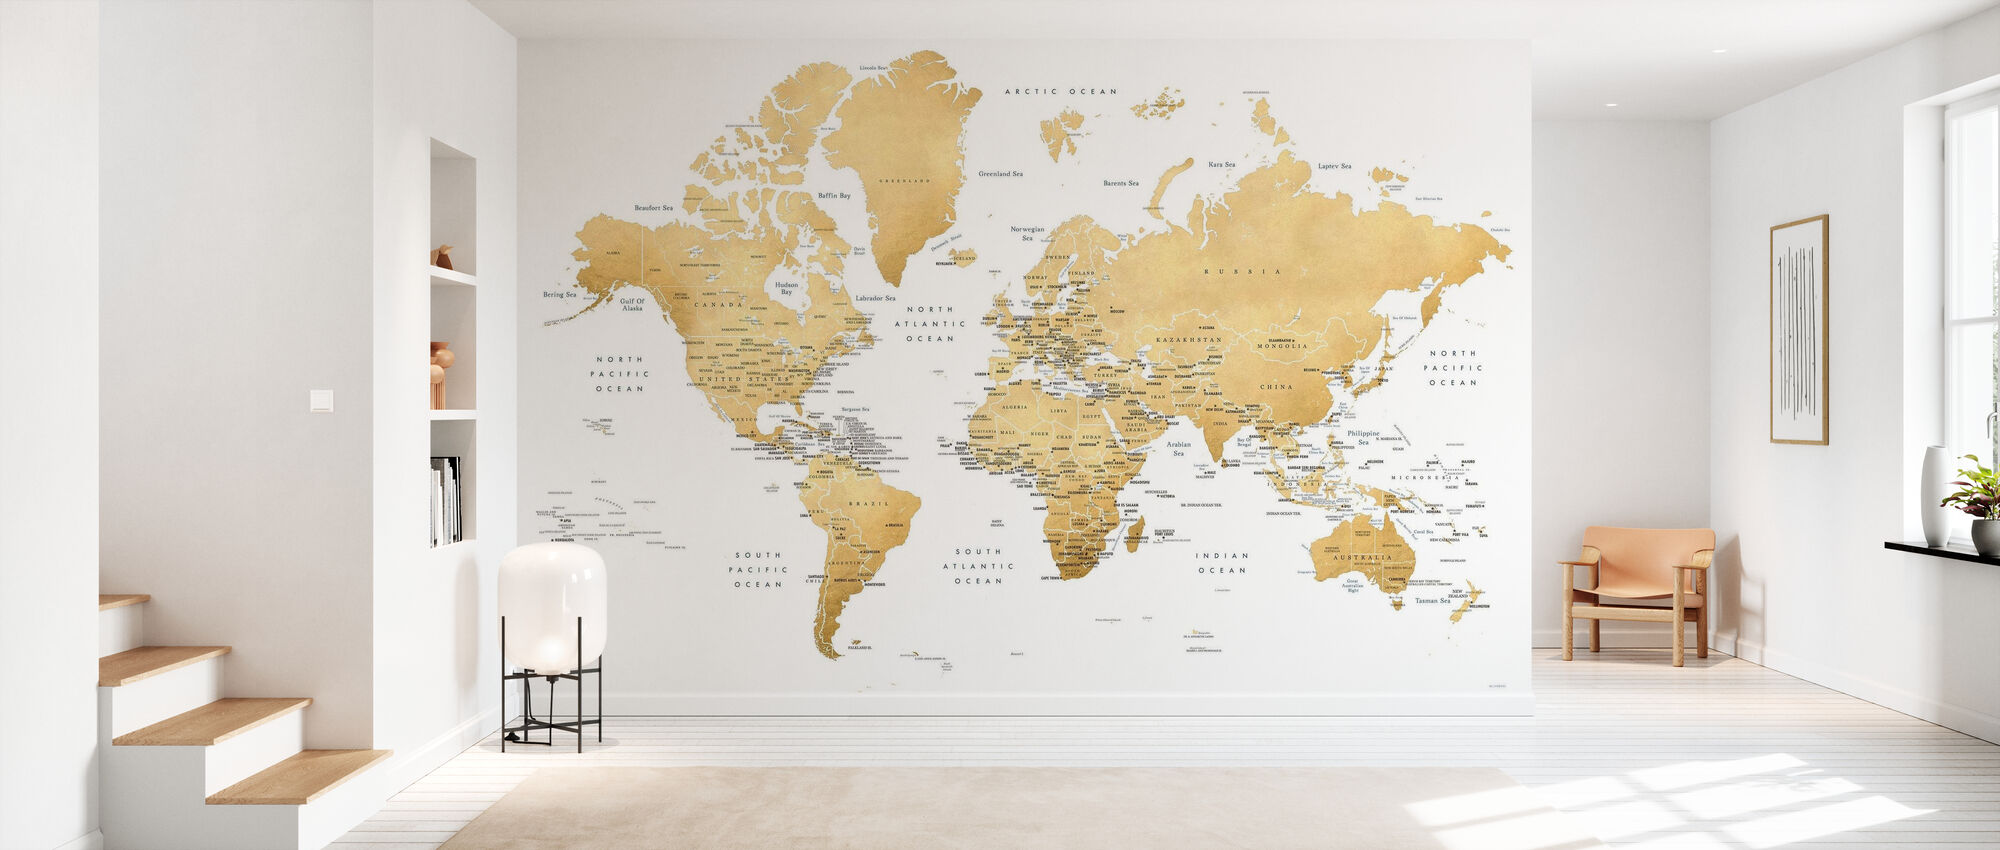 World Map with Capitals - Wallpaper - Hallway